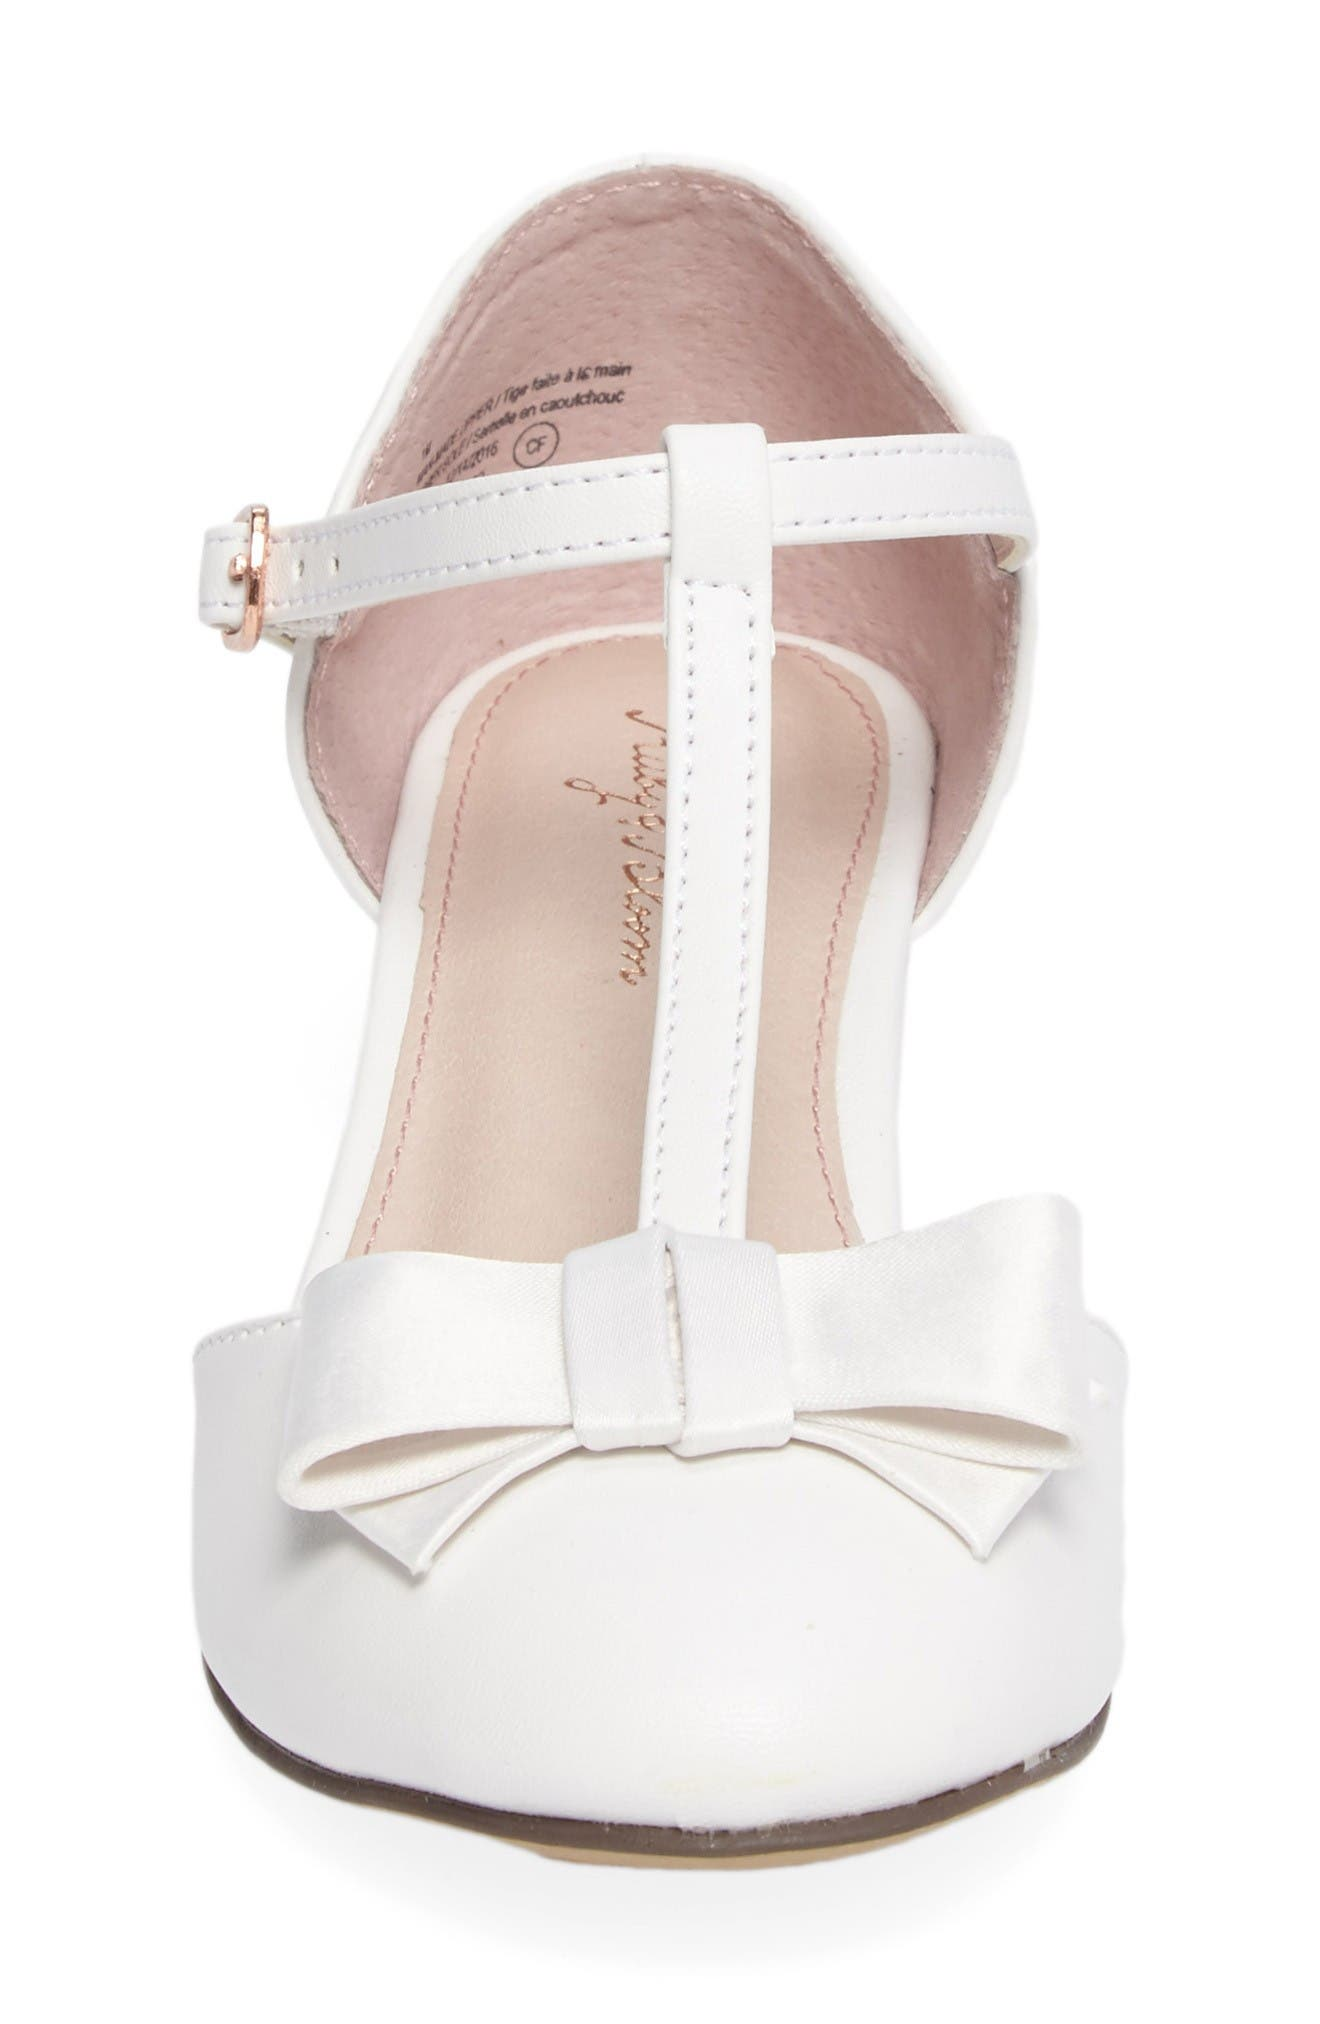 Wylow T-Strap Bow Pump,                             Alternate thumbnail 4, color,                             White Faux Leather